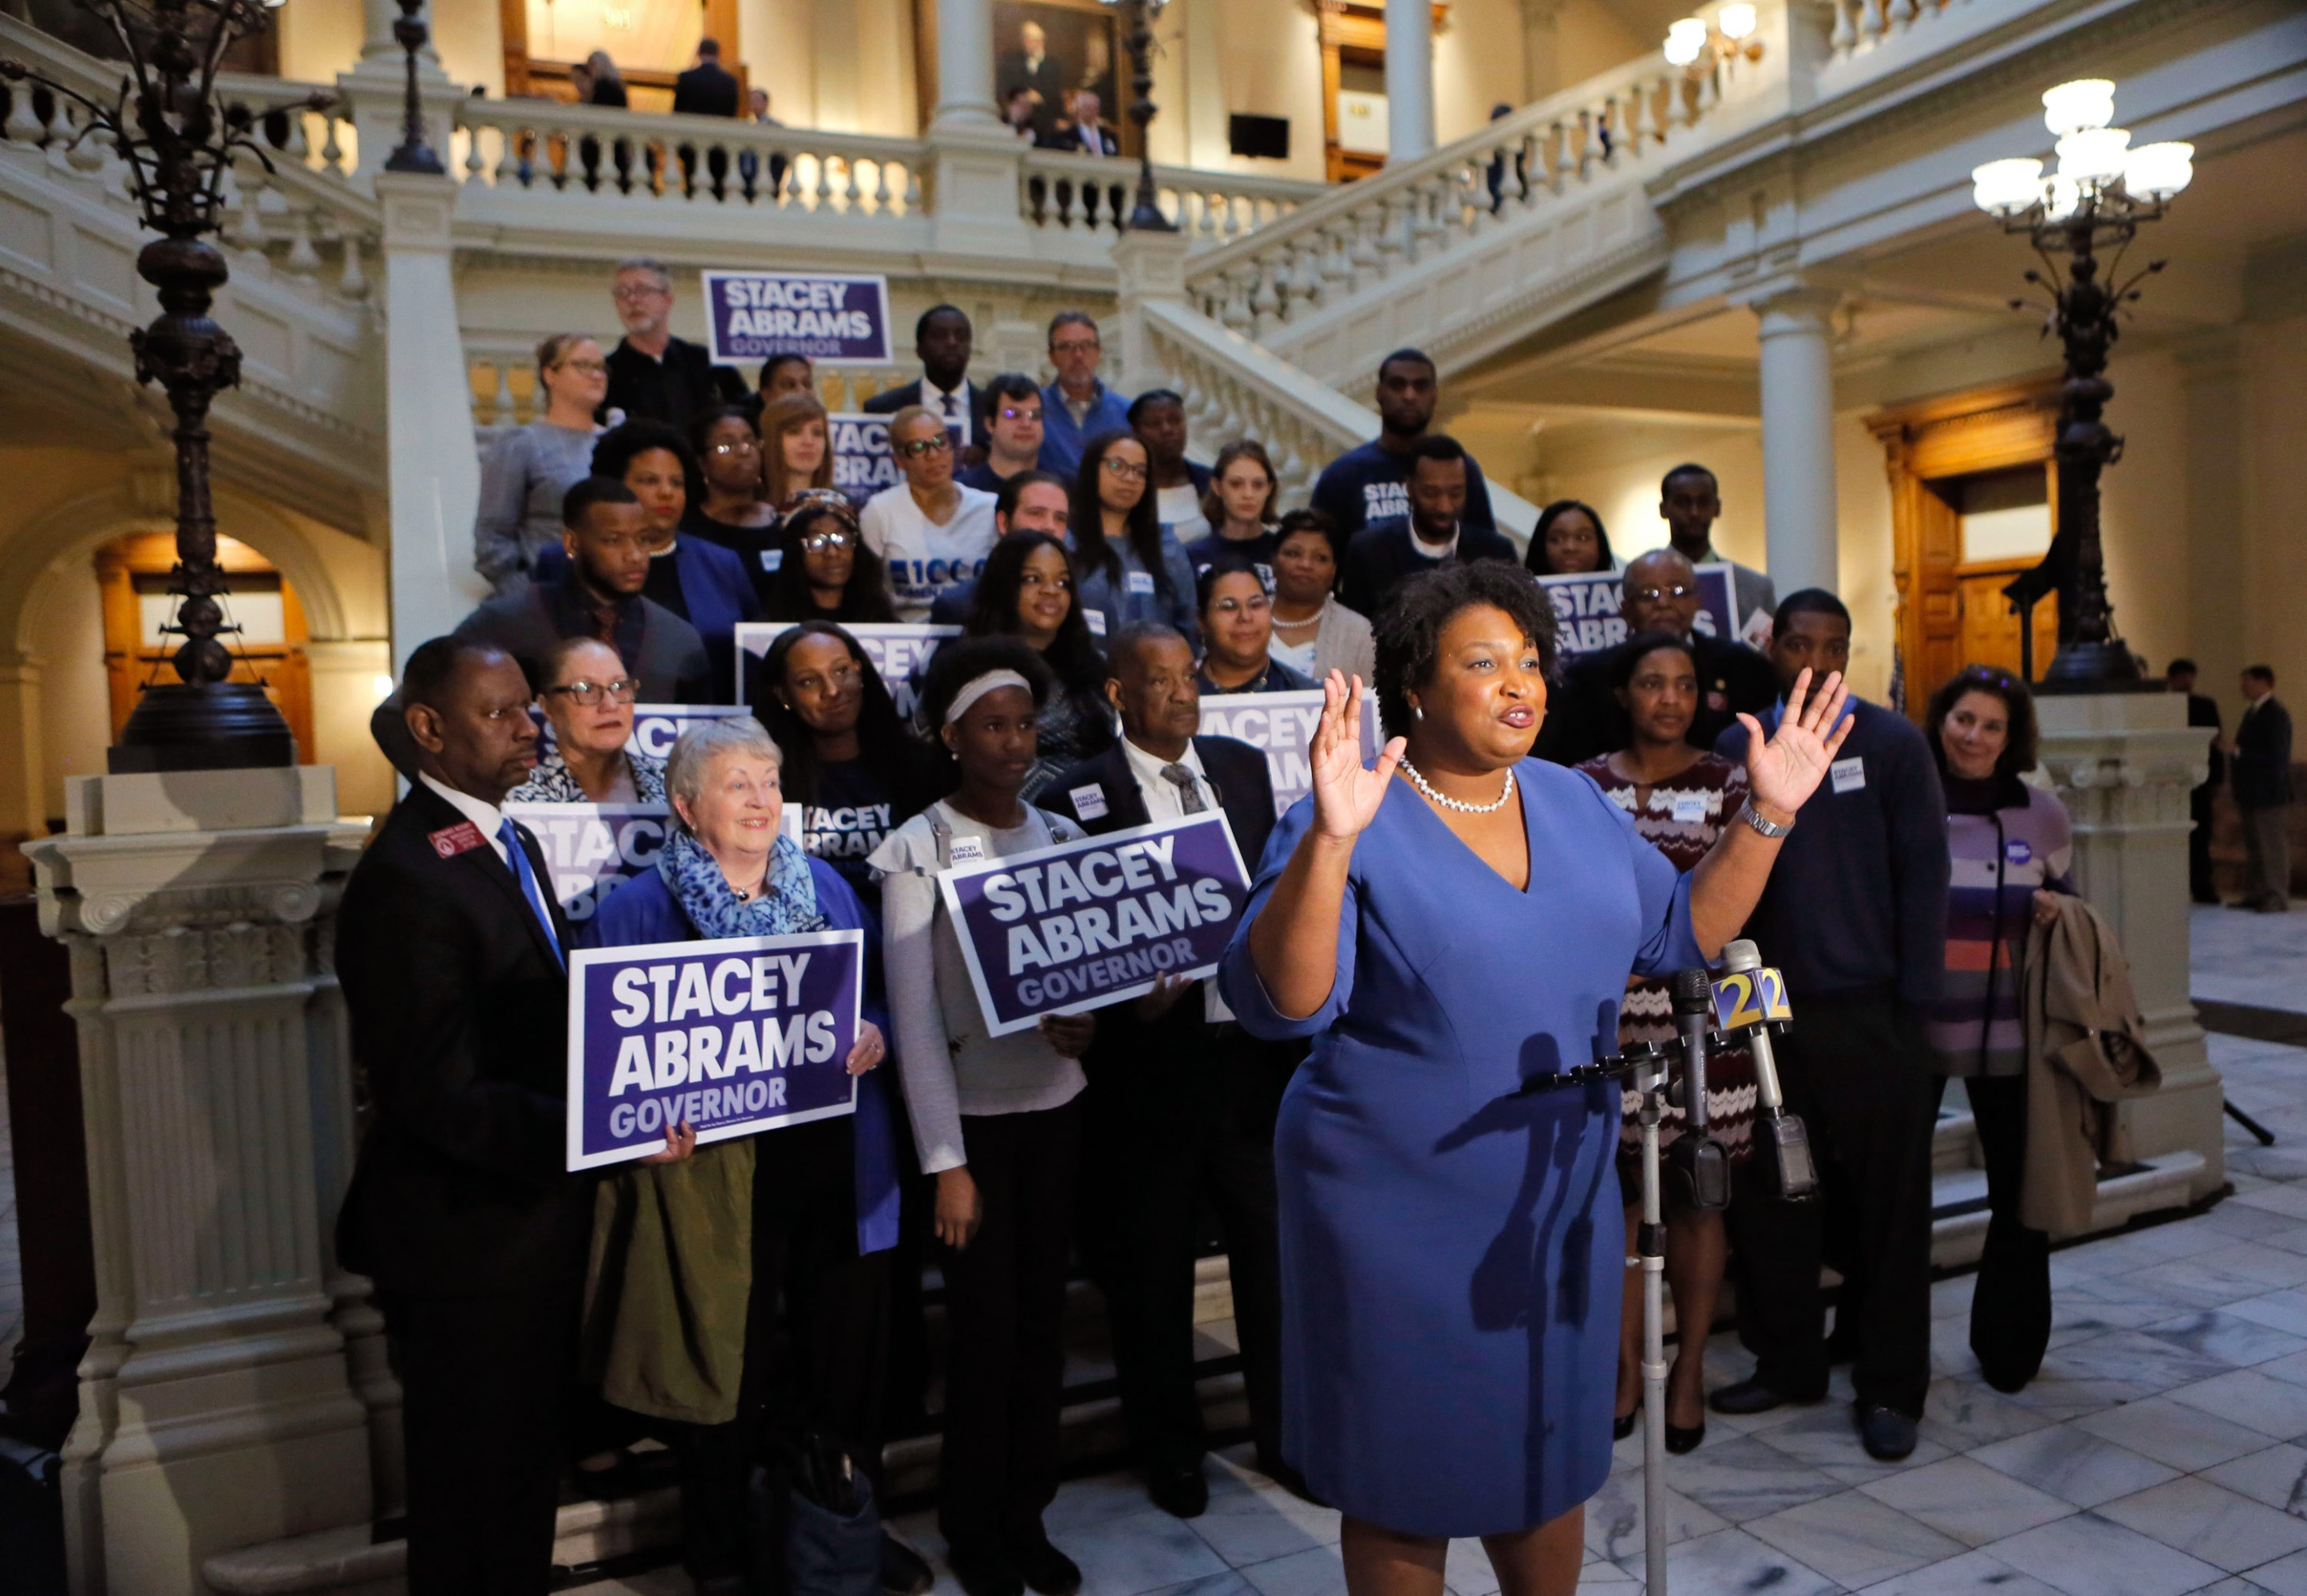 Stacy Abrams runs for governor of GA